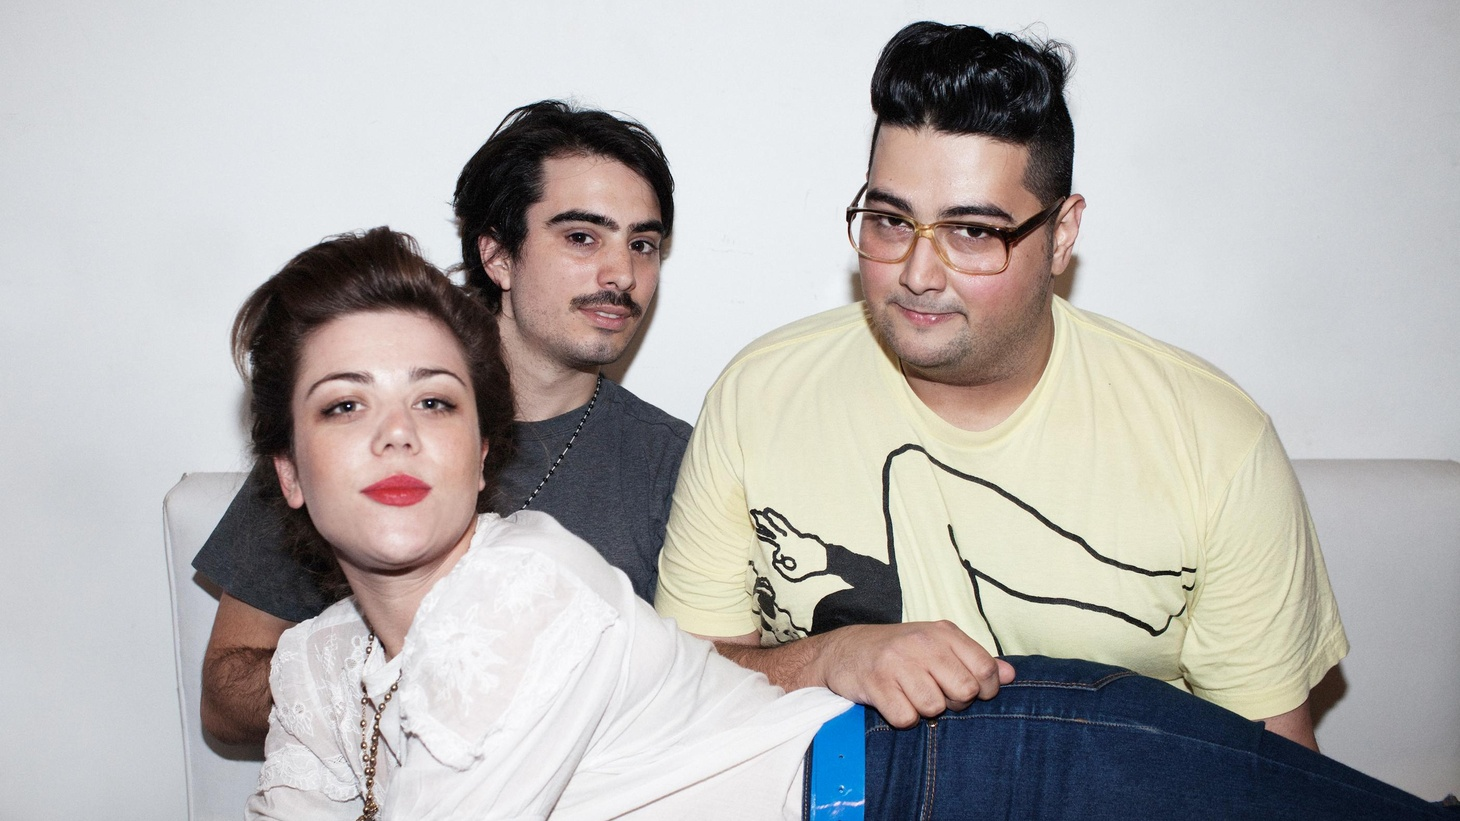 Brazilian outfit Bonde Do Role plays electrifying funk that is guaranteed to get you dancing. KCRW DJ Travis Holcombe predicts their new CD will make his top 10 this year.